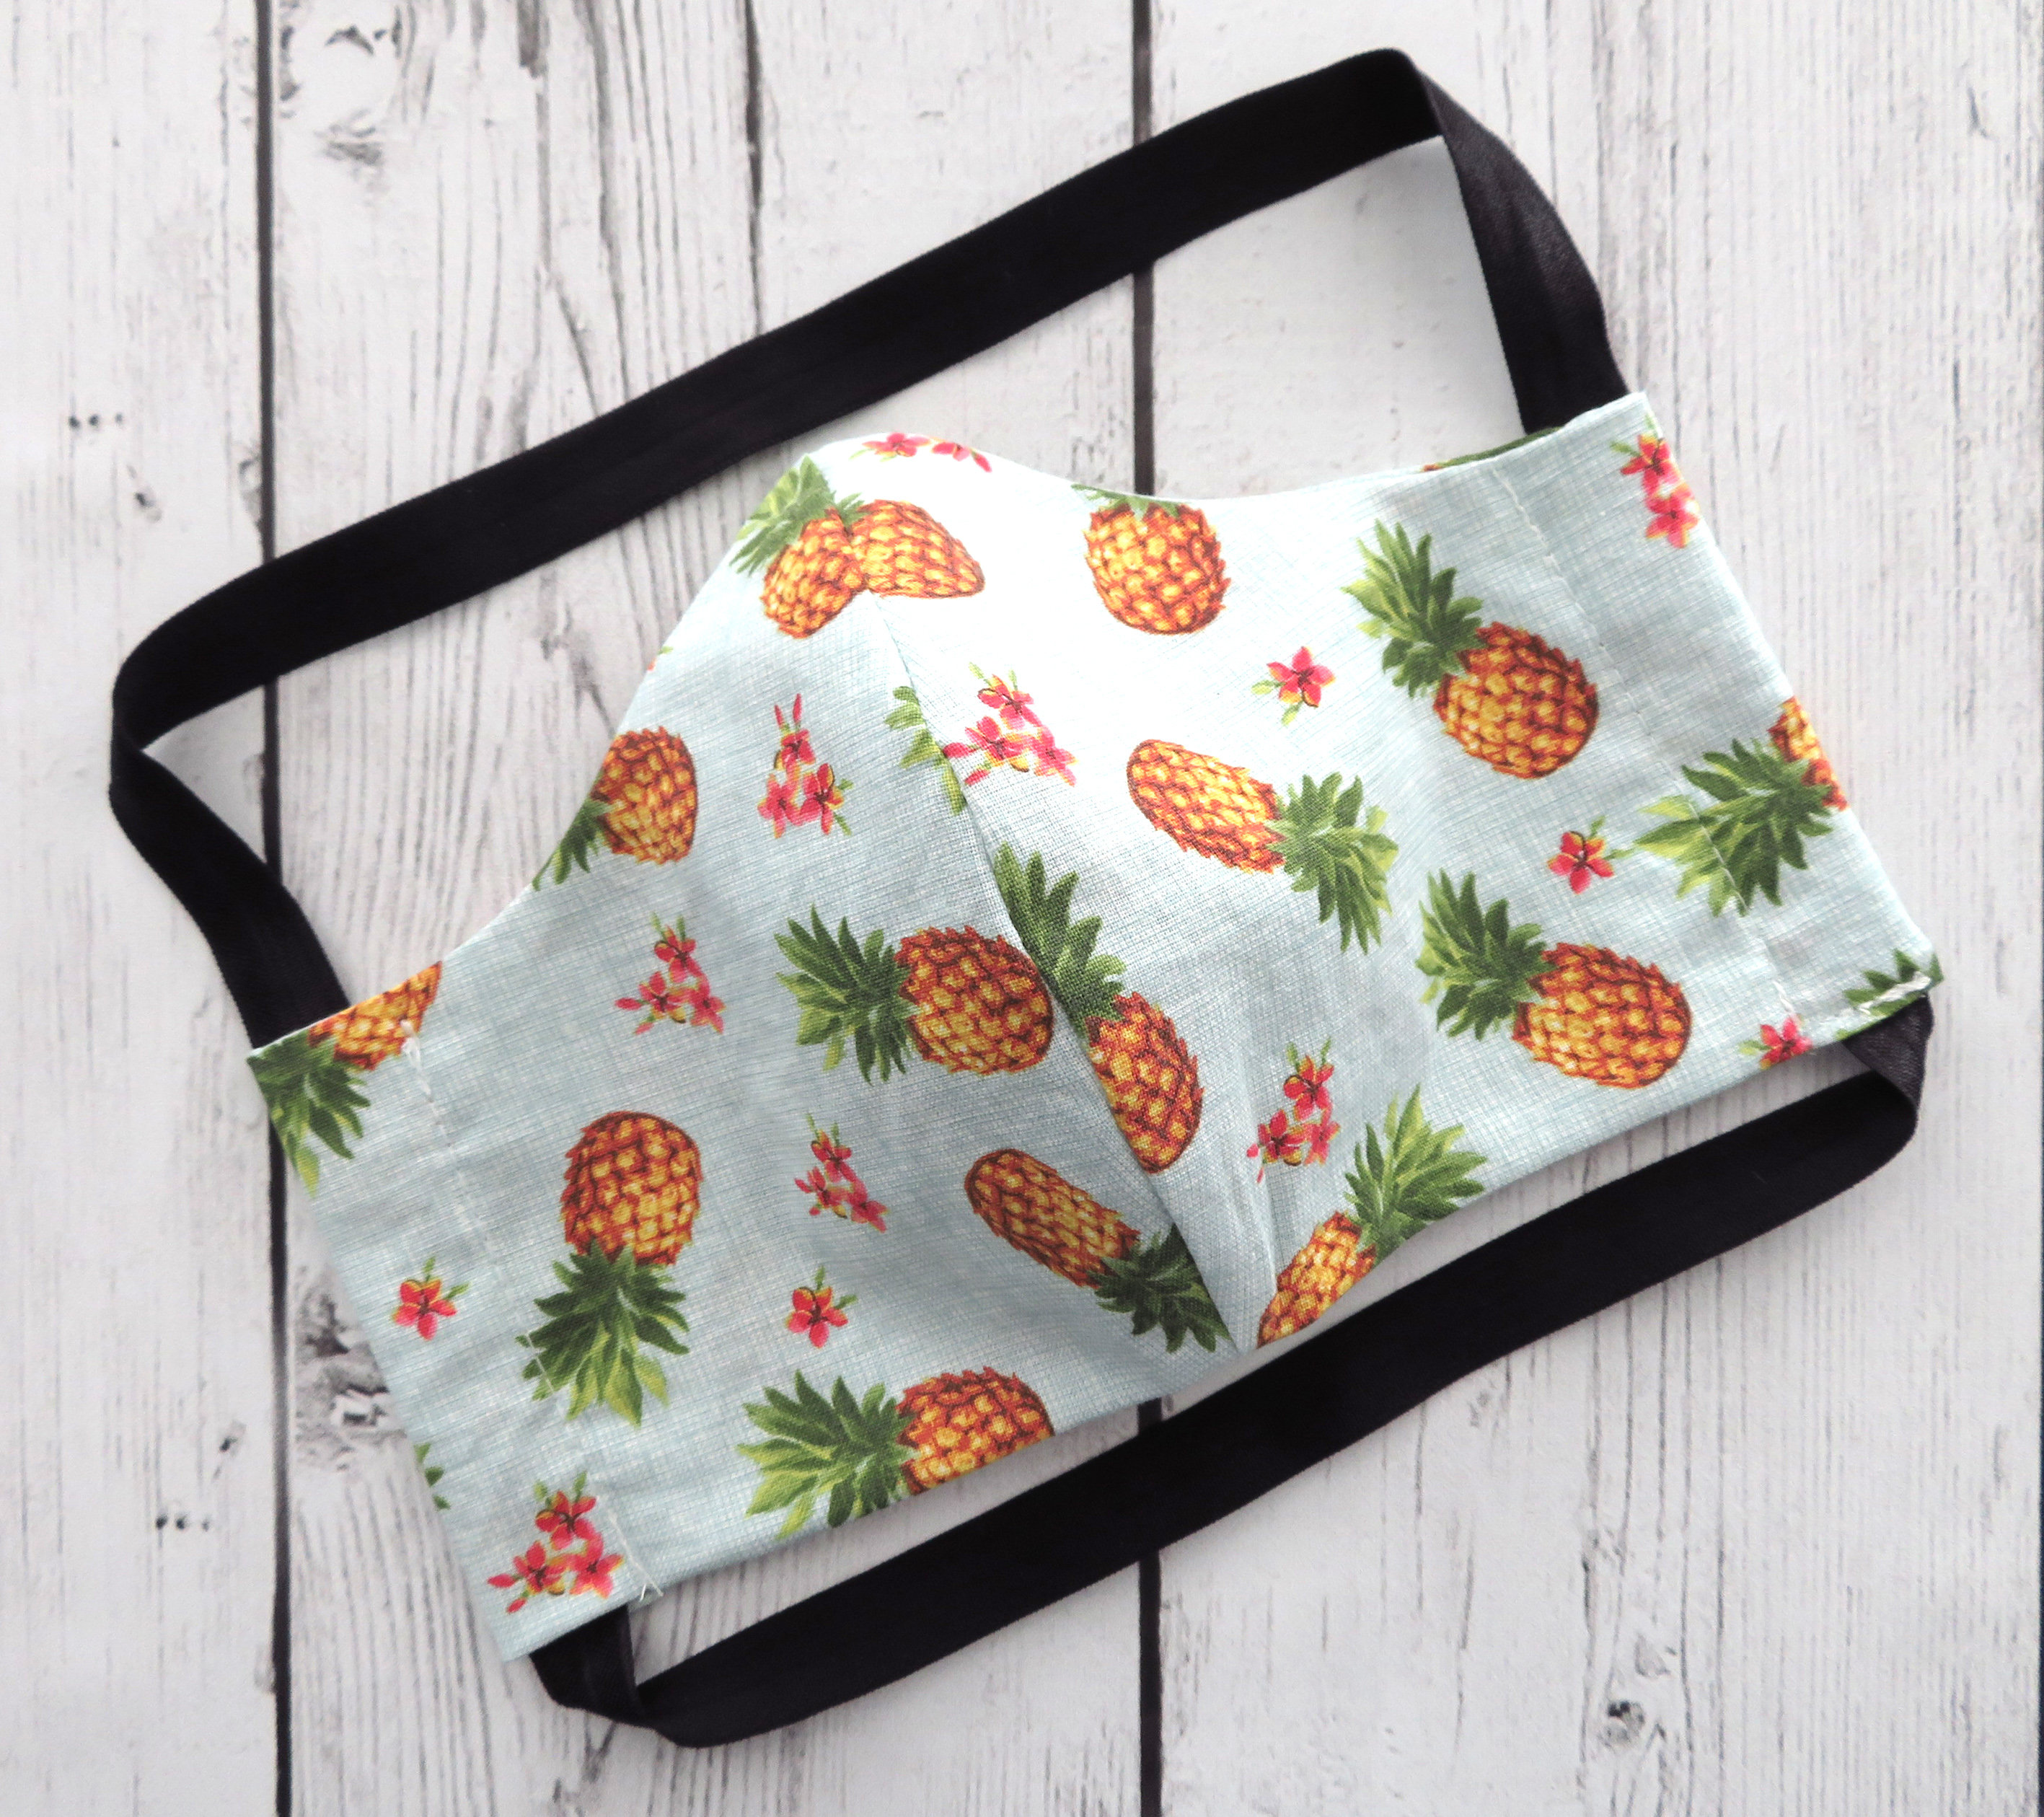 Pineapple Face Mask - COMFORTABLE, ready to ship, handmade in usa, cotton face mask for adult, washable and re-usable, ear saver design